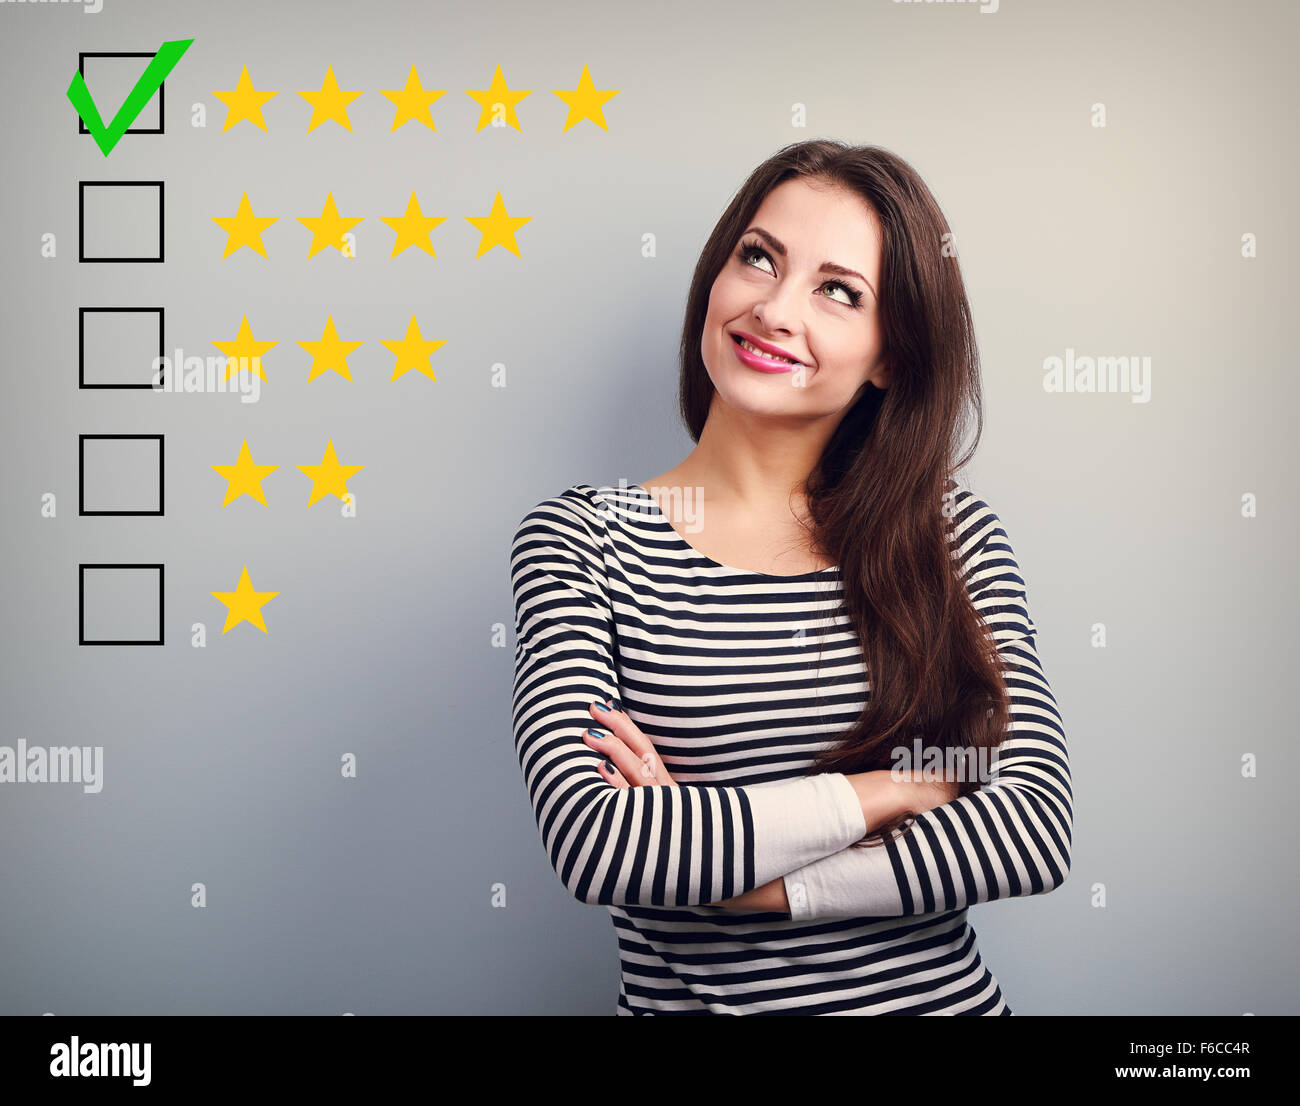 The best rating, evaluation. Business confident happy woman voting to five yellow star to increase ranking. On grey - Stock Image